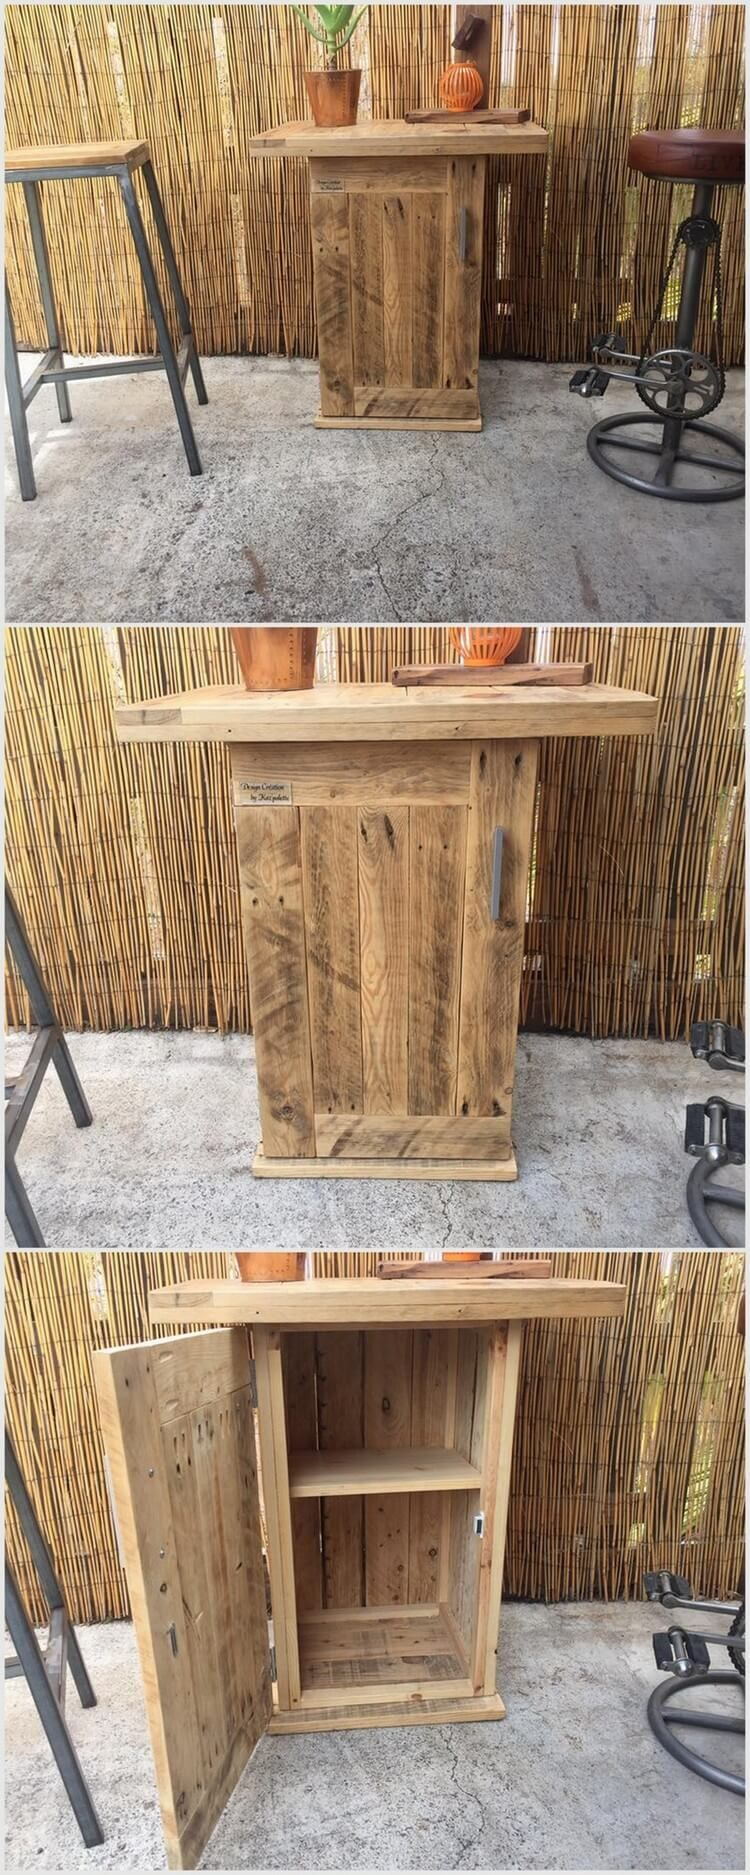 Used Shipping Wood Pallets Table Ideas Pallet TablesWooden ProjectsPallet